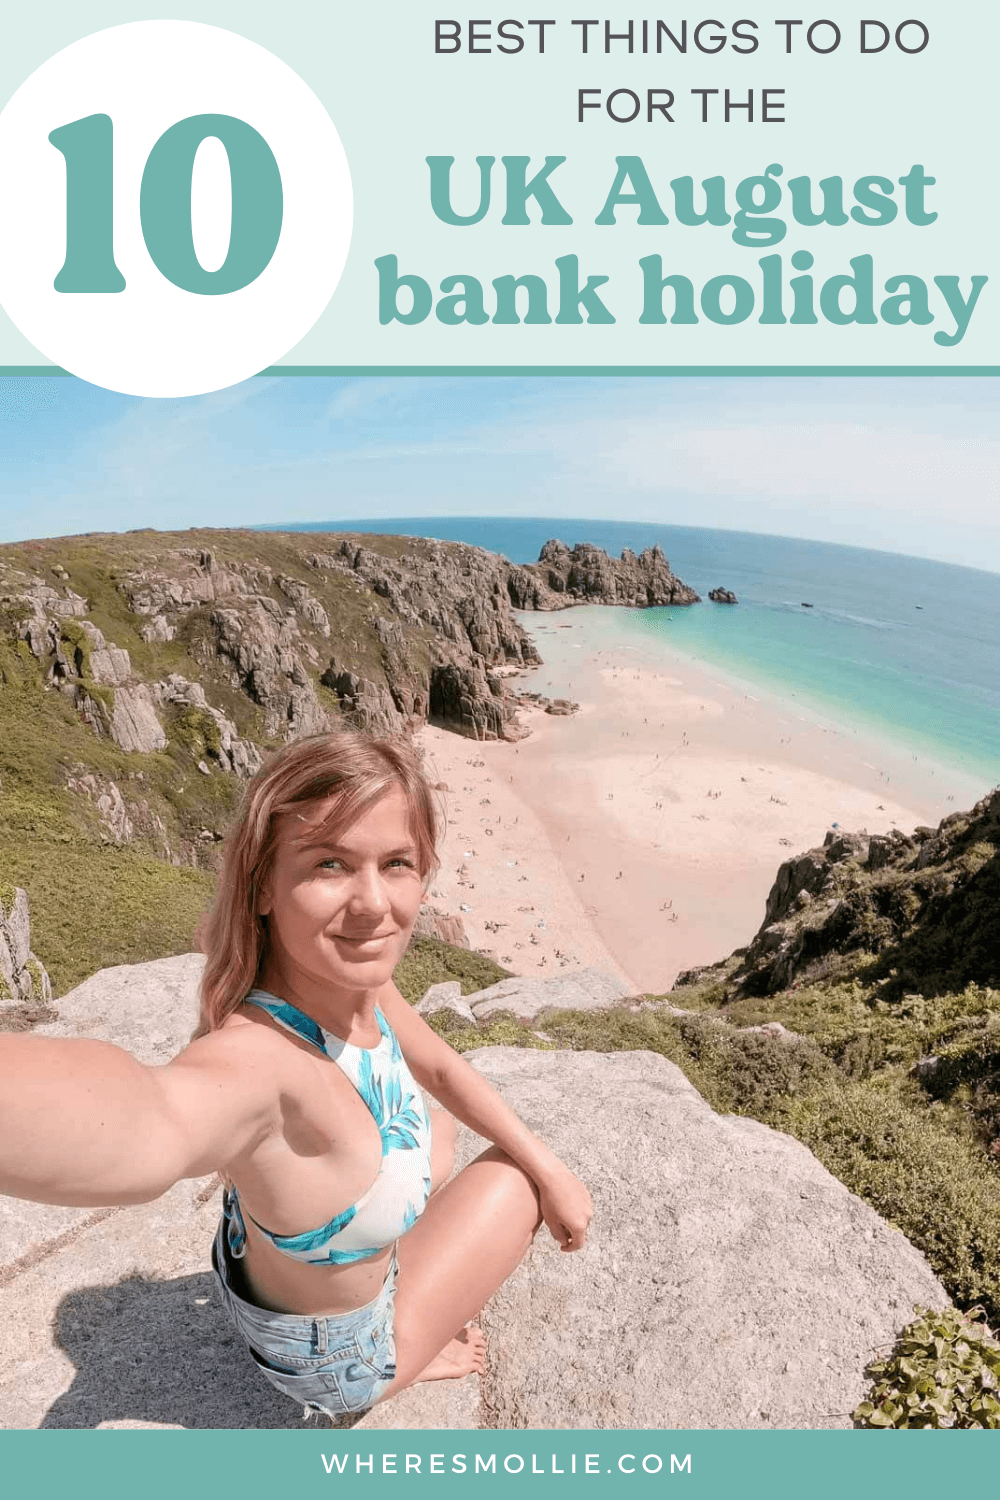 The best things to do for the August Bank Holiday 2021